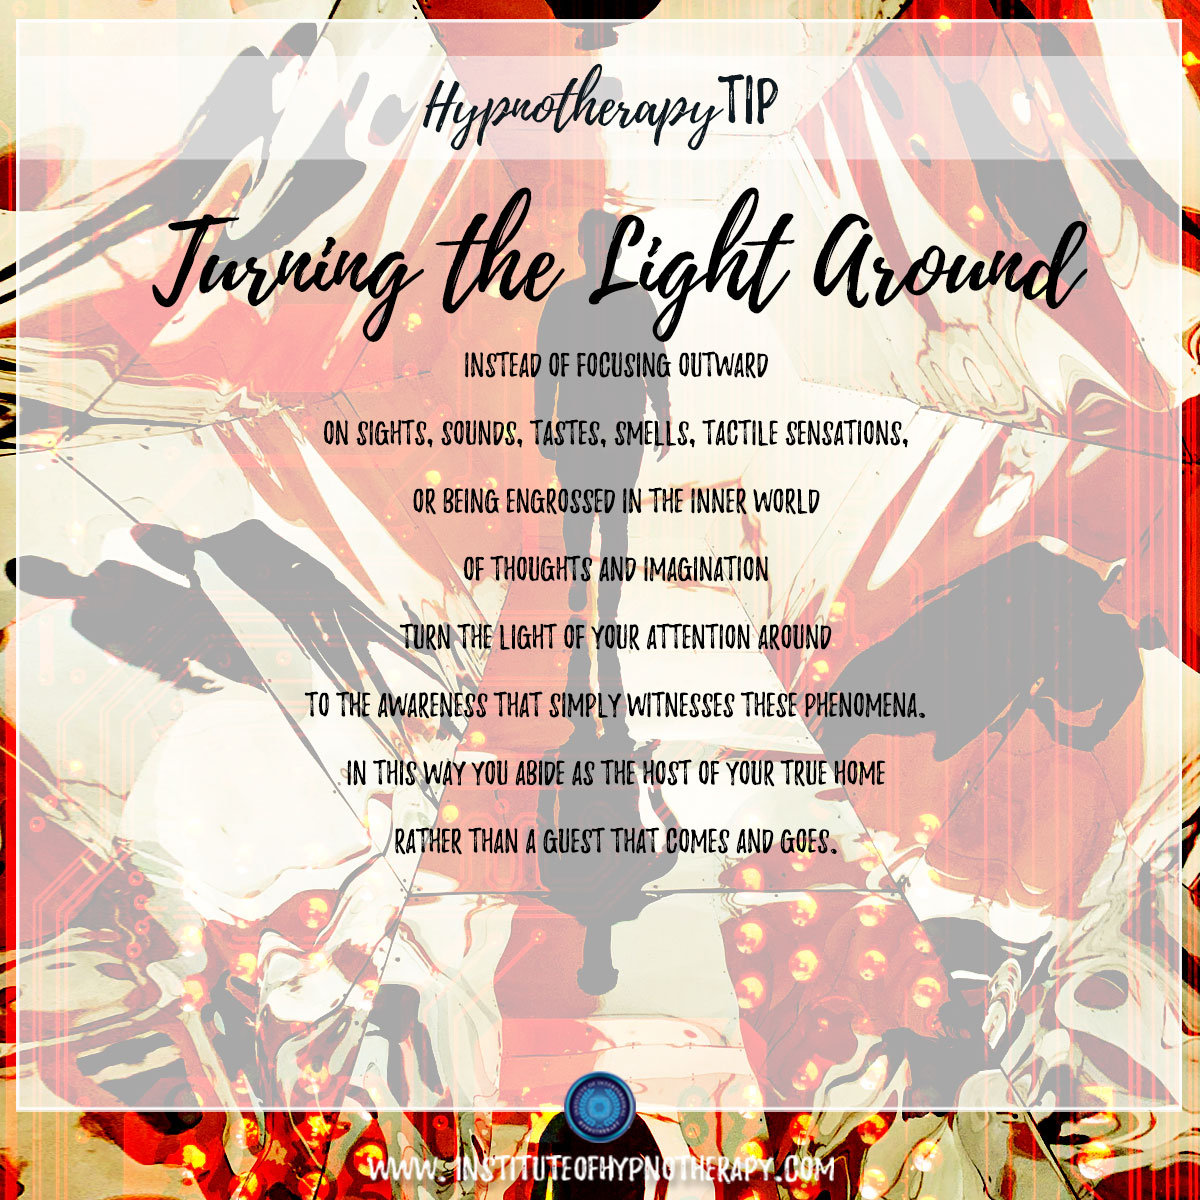 Hypnotherapy Tip : Turning the Light Around